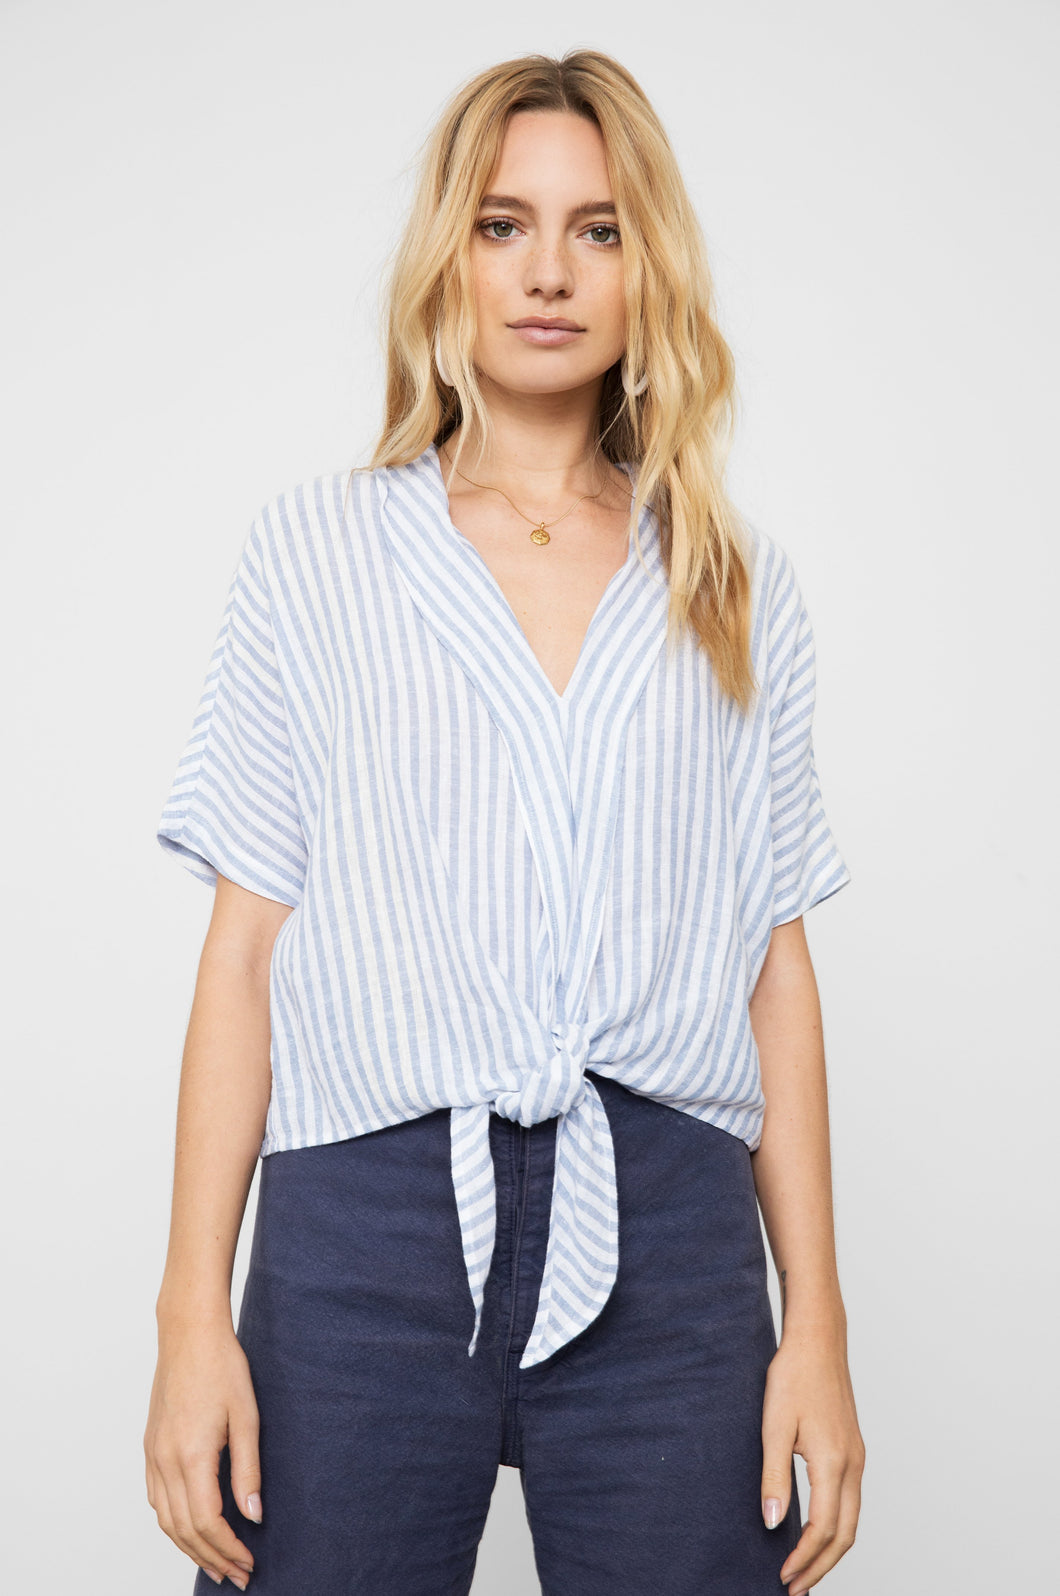 June Bluebell Striped Top